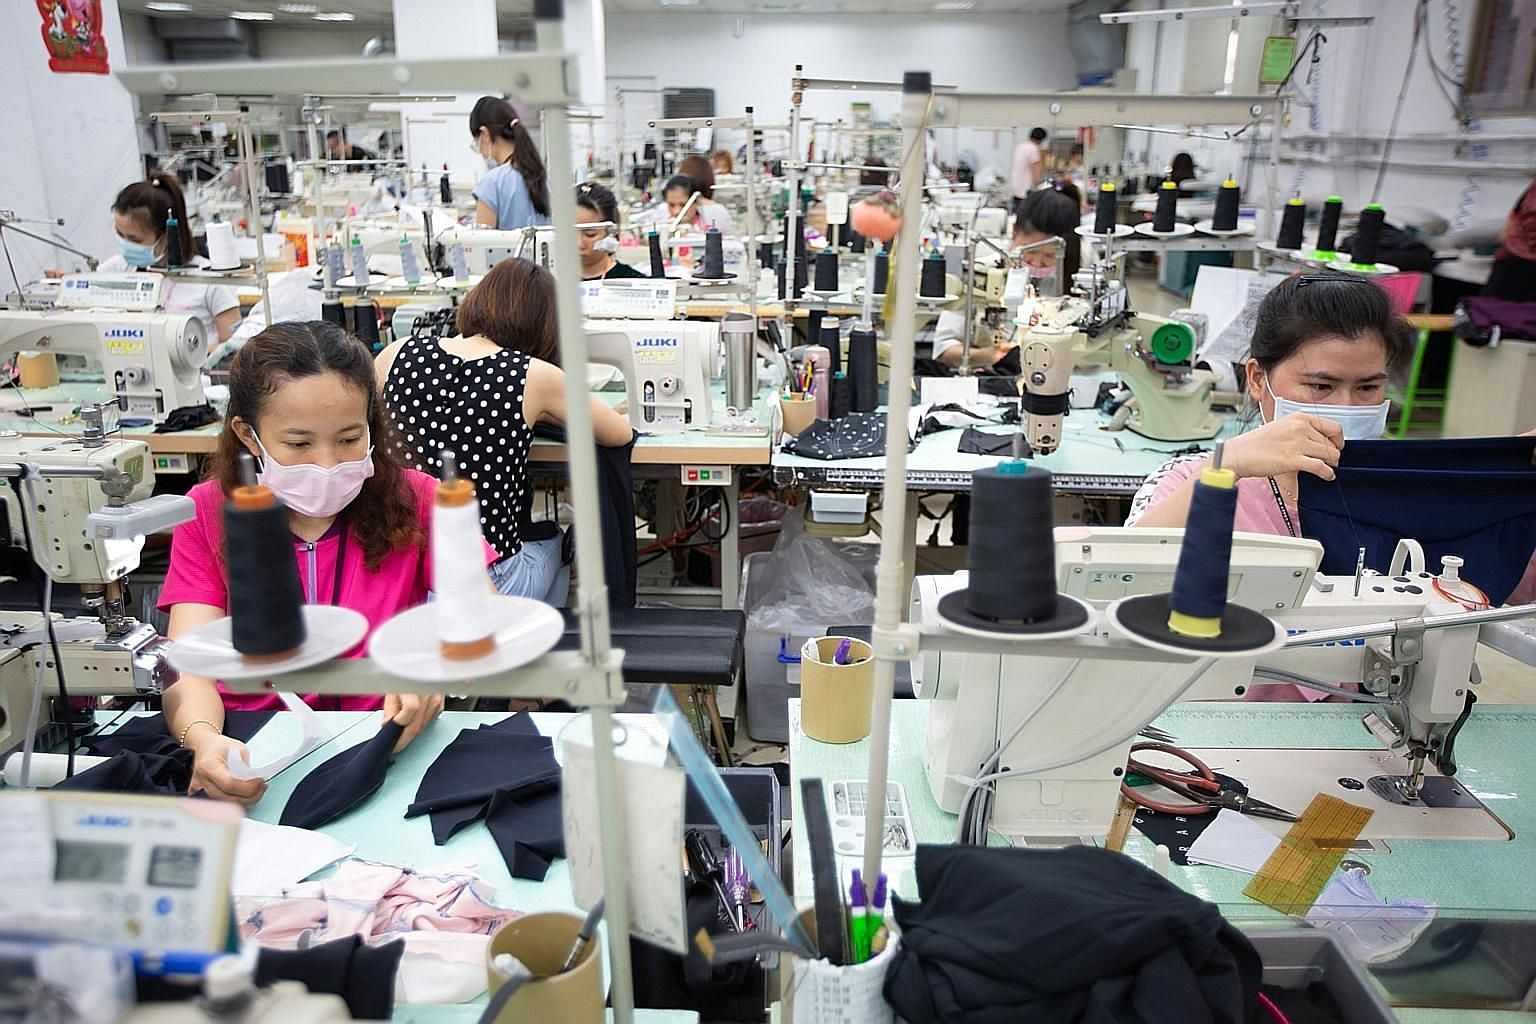 A garment factory in Vietnam. The country stands to gain from the US-China trade war, which has sparked an exodus from China of low value-added production, including textiles. PHOTO: BLOOMBERG